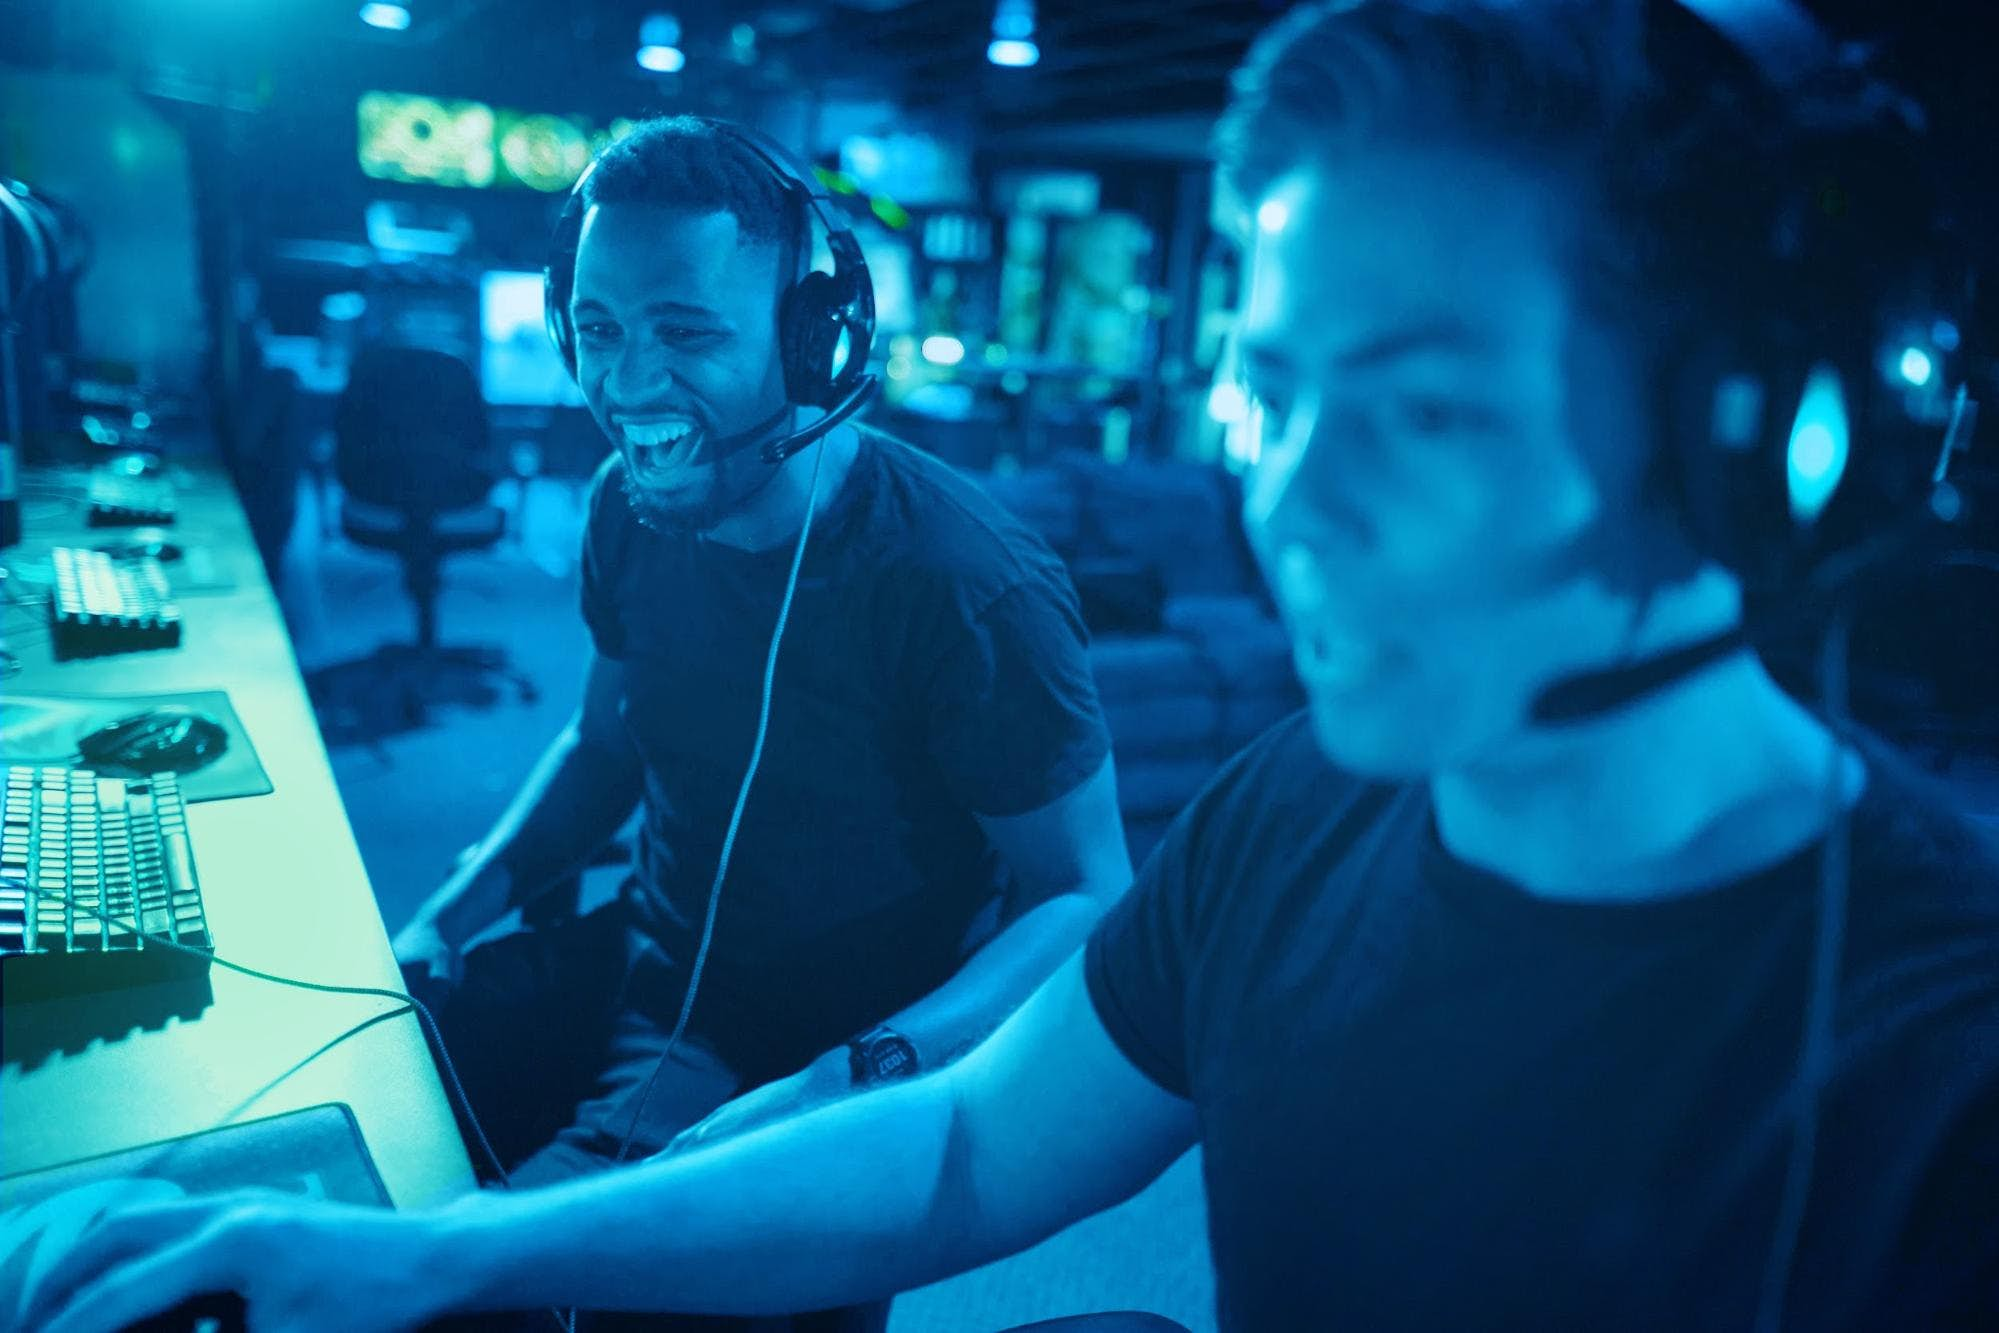 What Are the Trends Shaping the Future of Multiplayer Gaming?